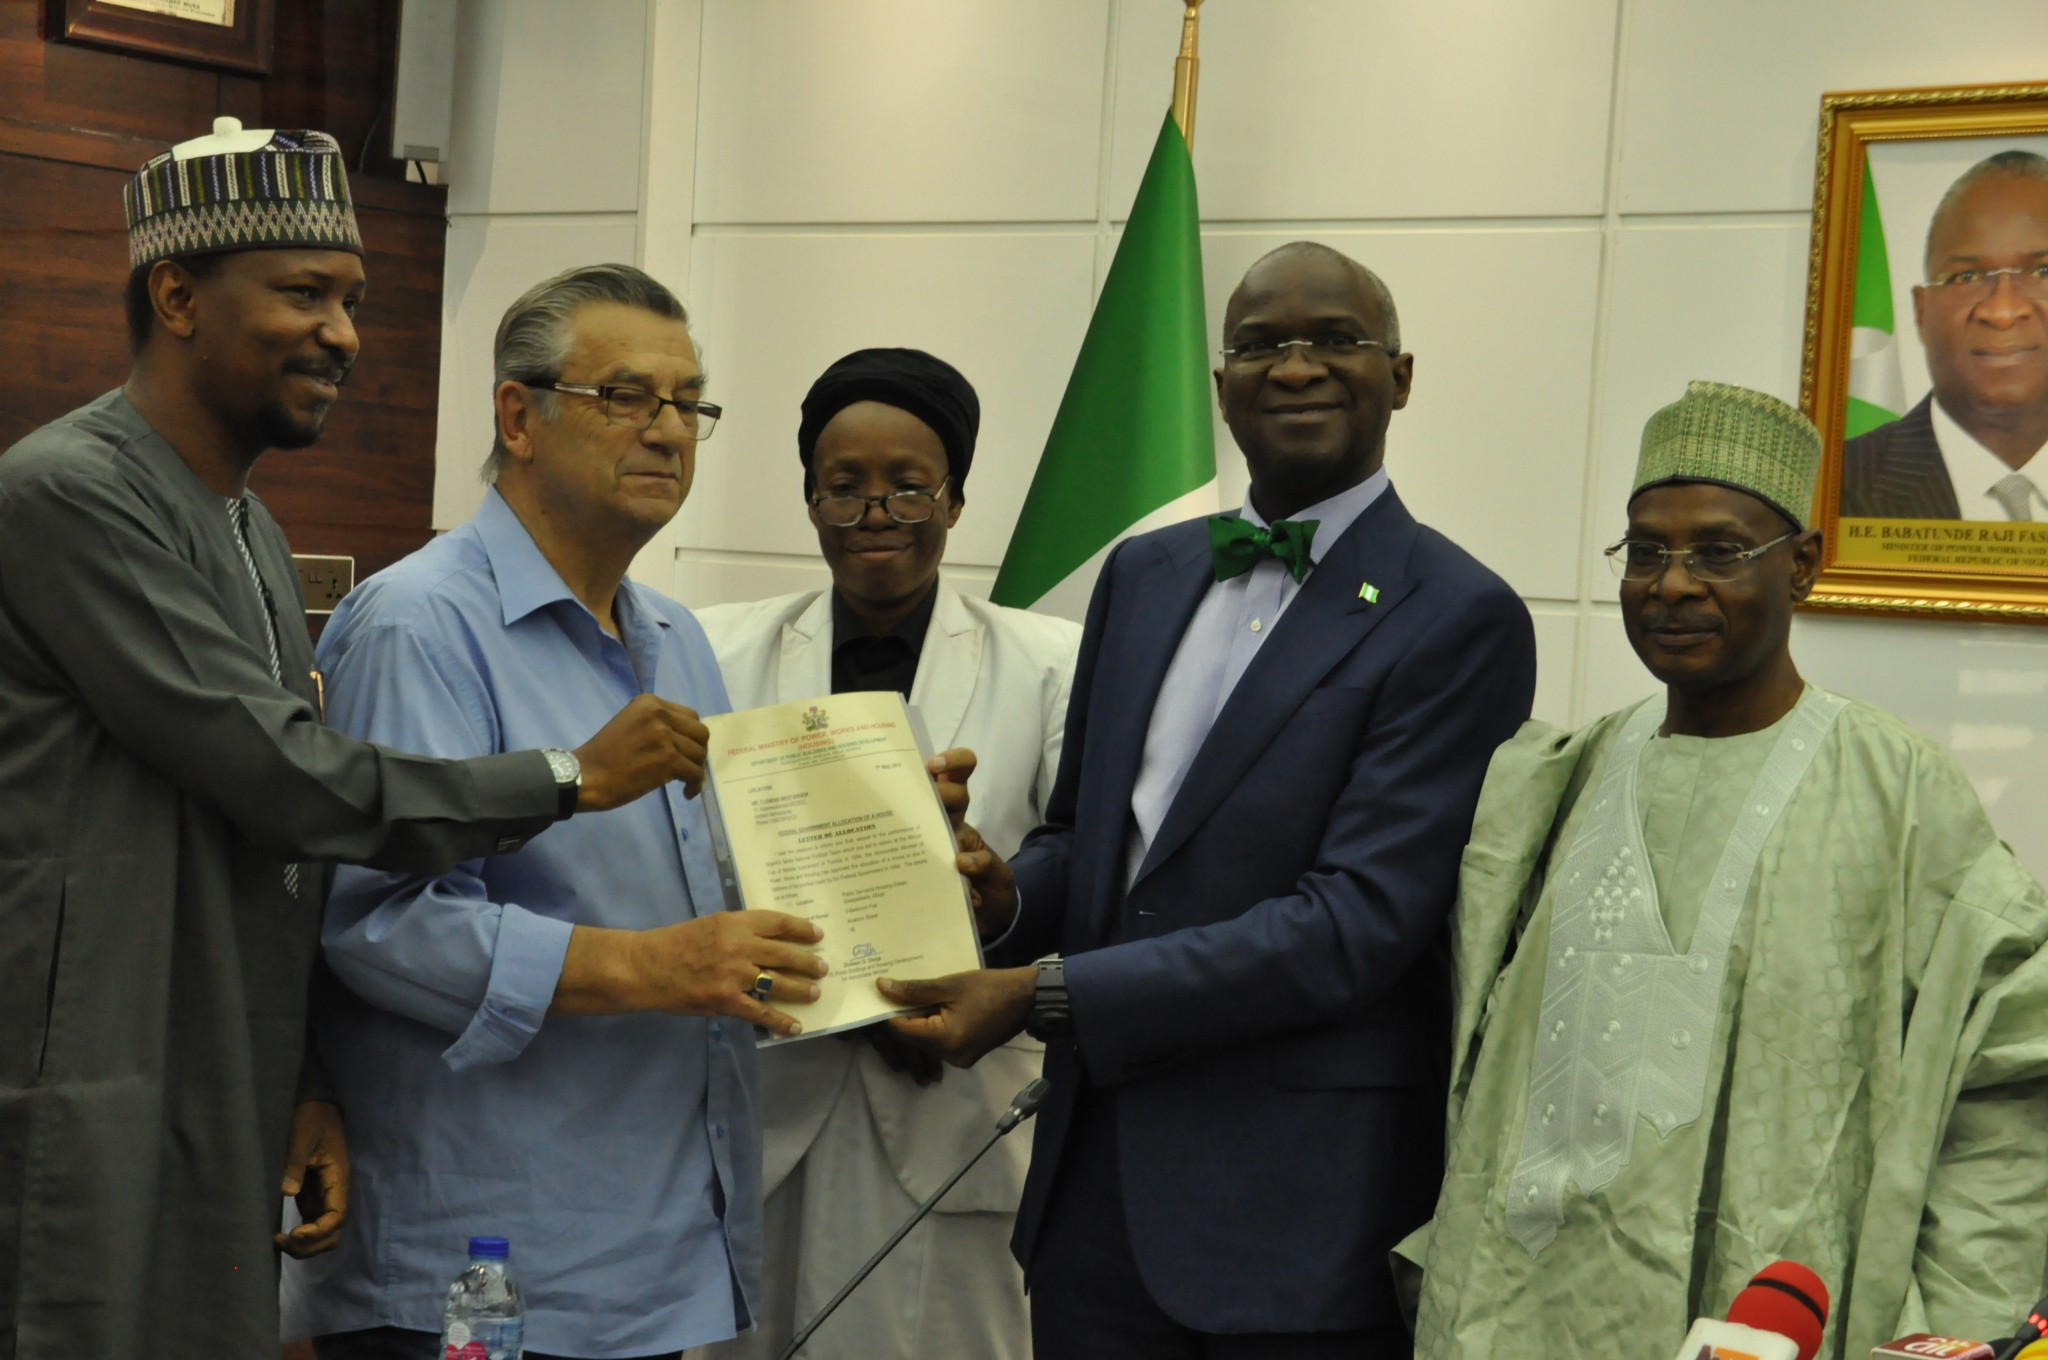 FG fulfils pledge of house to former Super Eagles' coach, Clemens Westerhorf